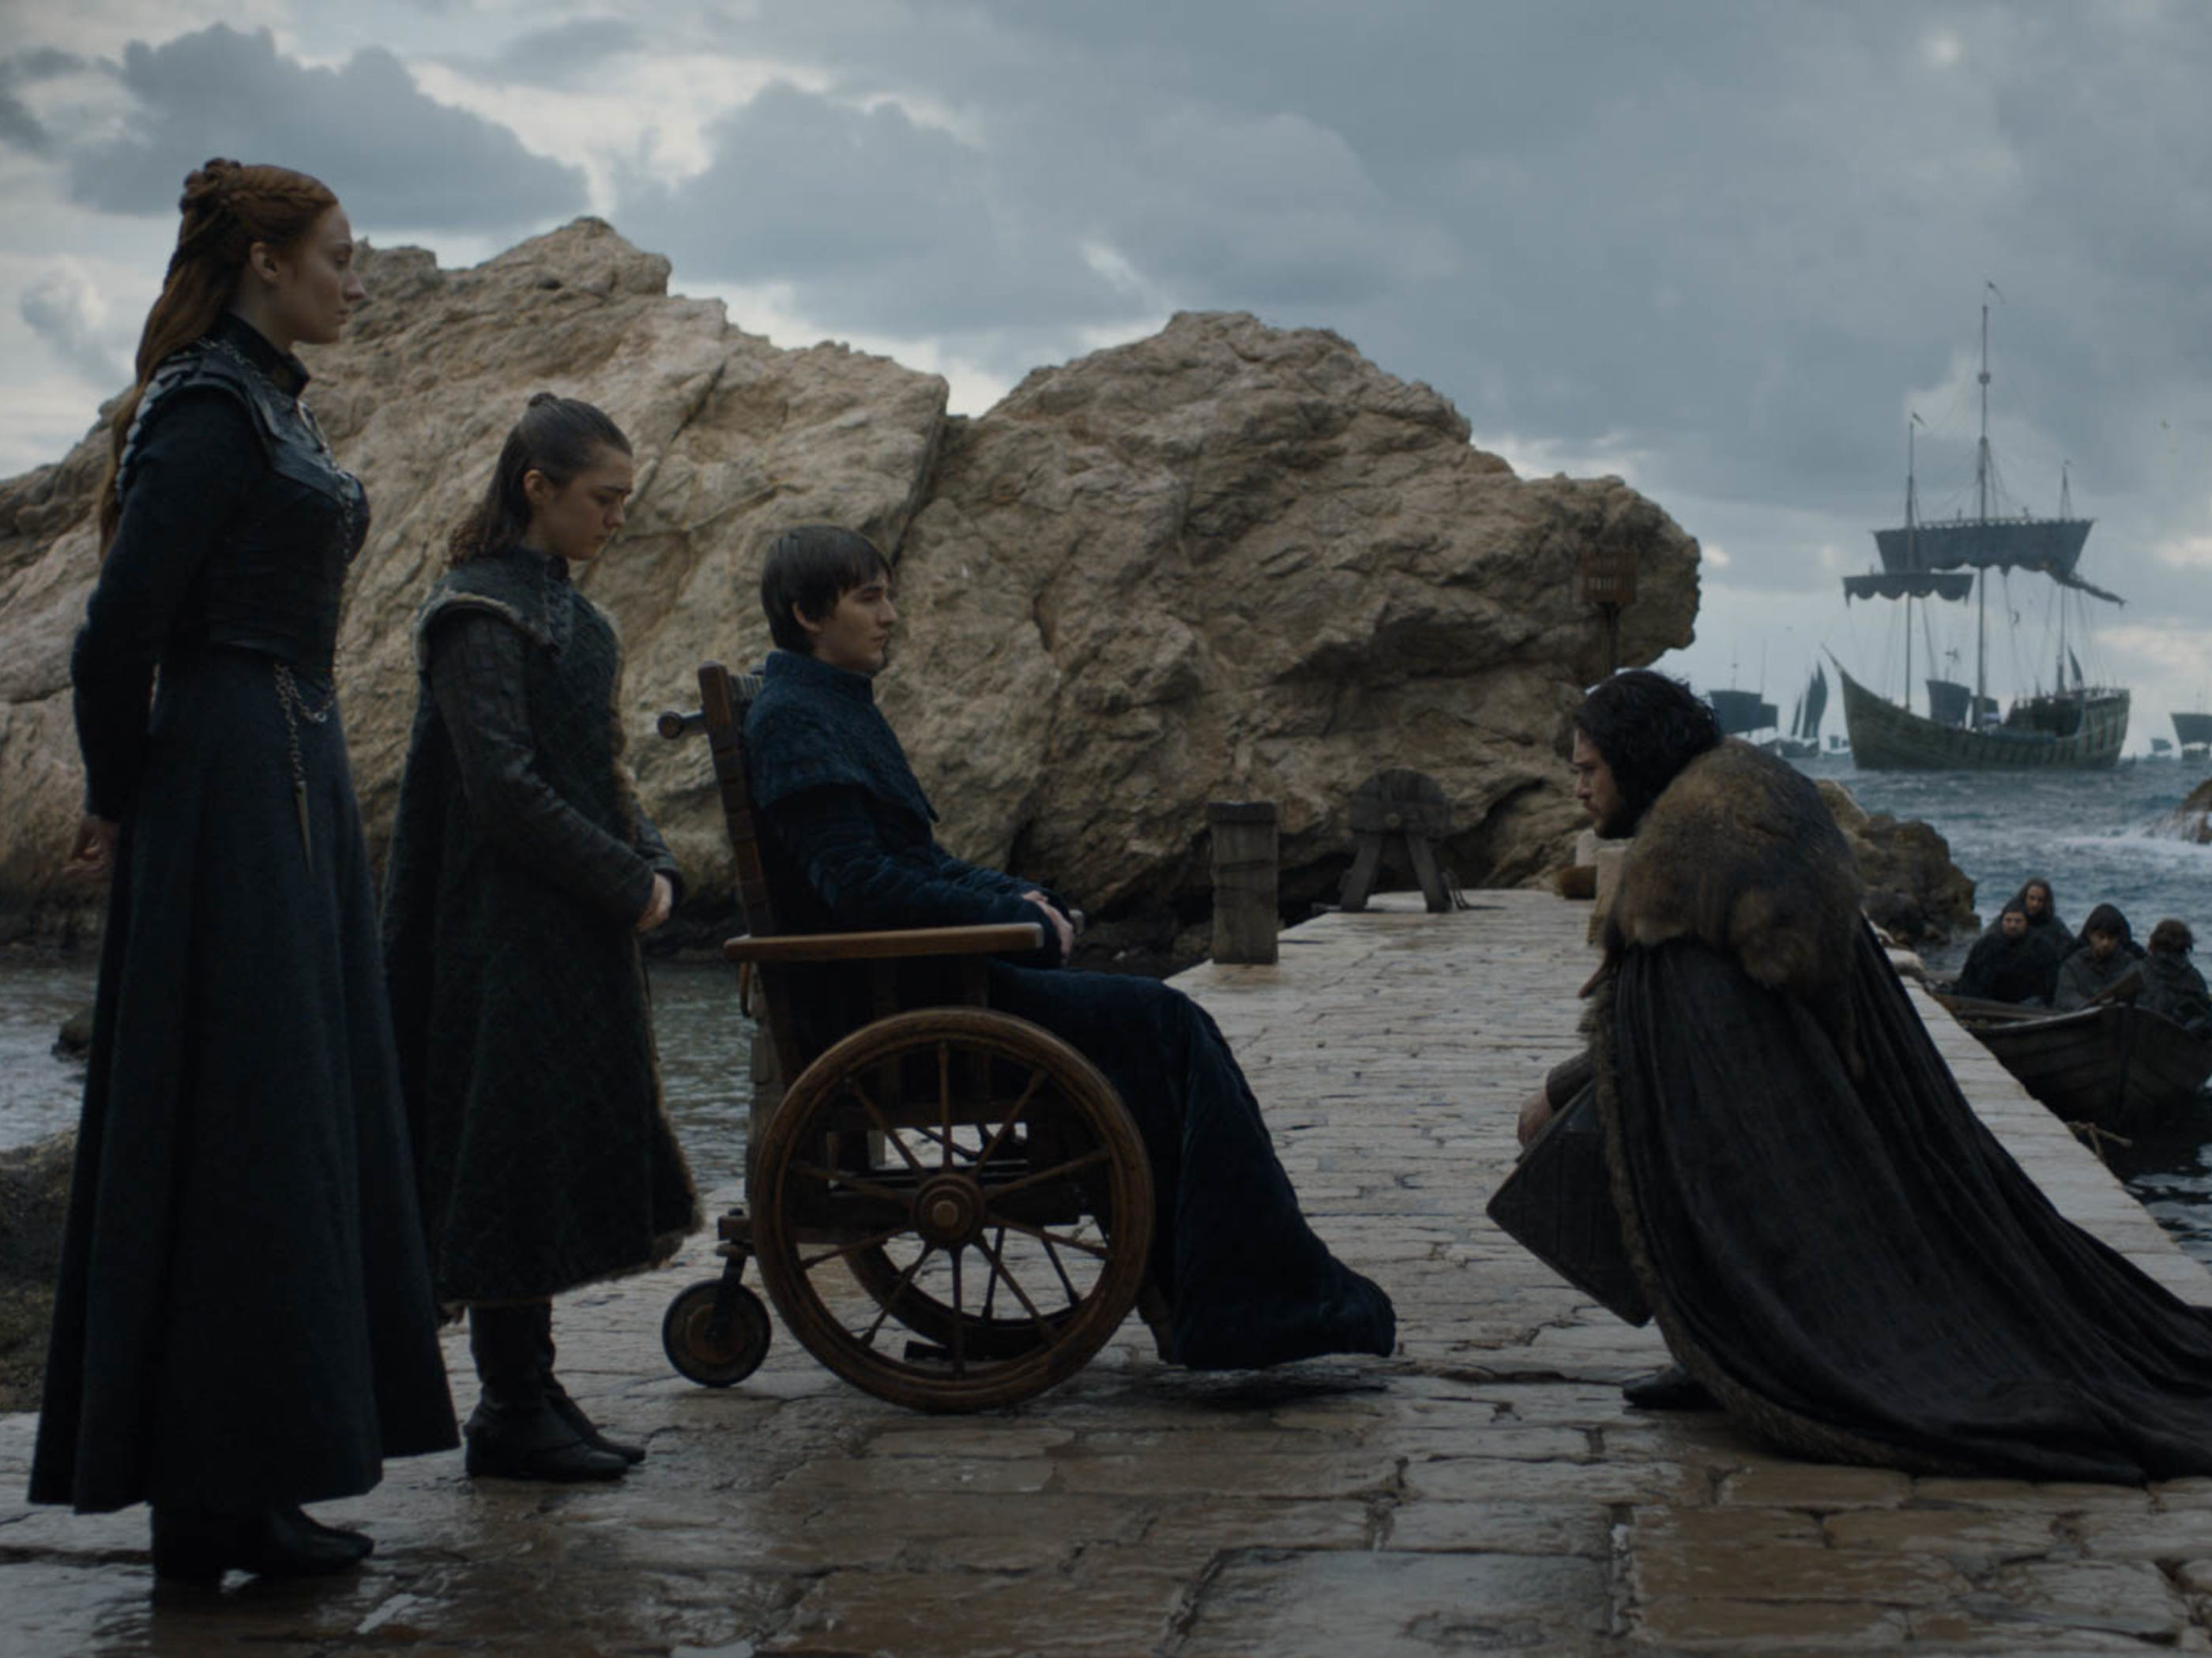 The Starks - Sansa (Sophie Turner), left, Arya (Maisie Williams), Bran (Isaac Hempstead Wright) and Jon Snow (Kit Harington) - meet, before heading in different directions.